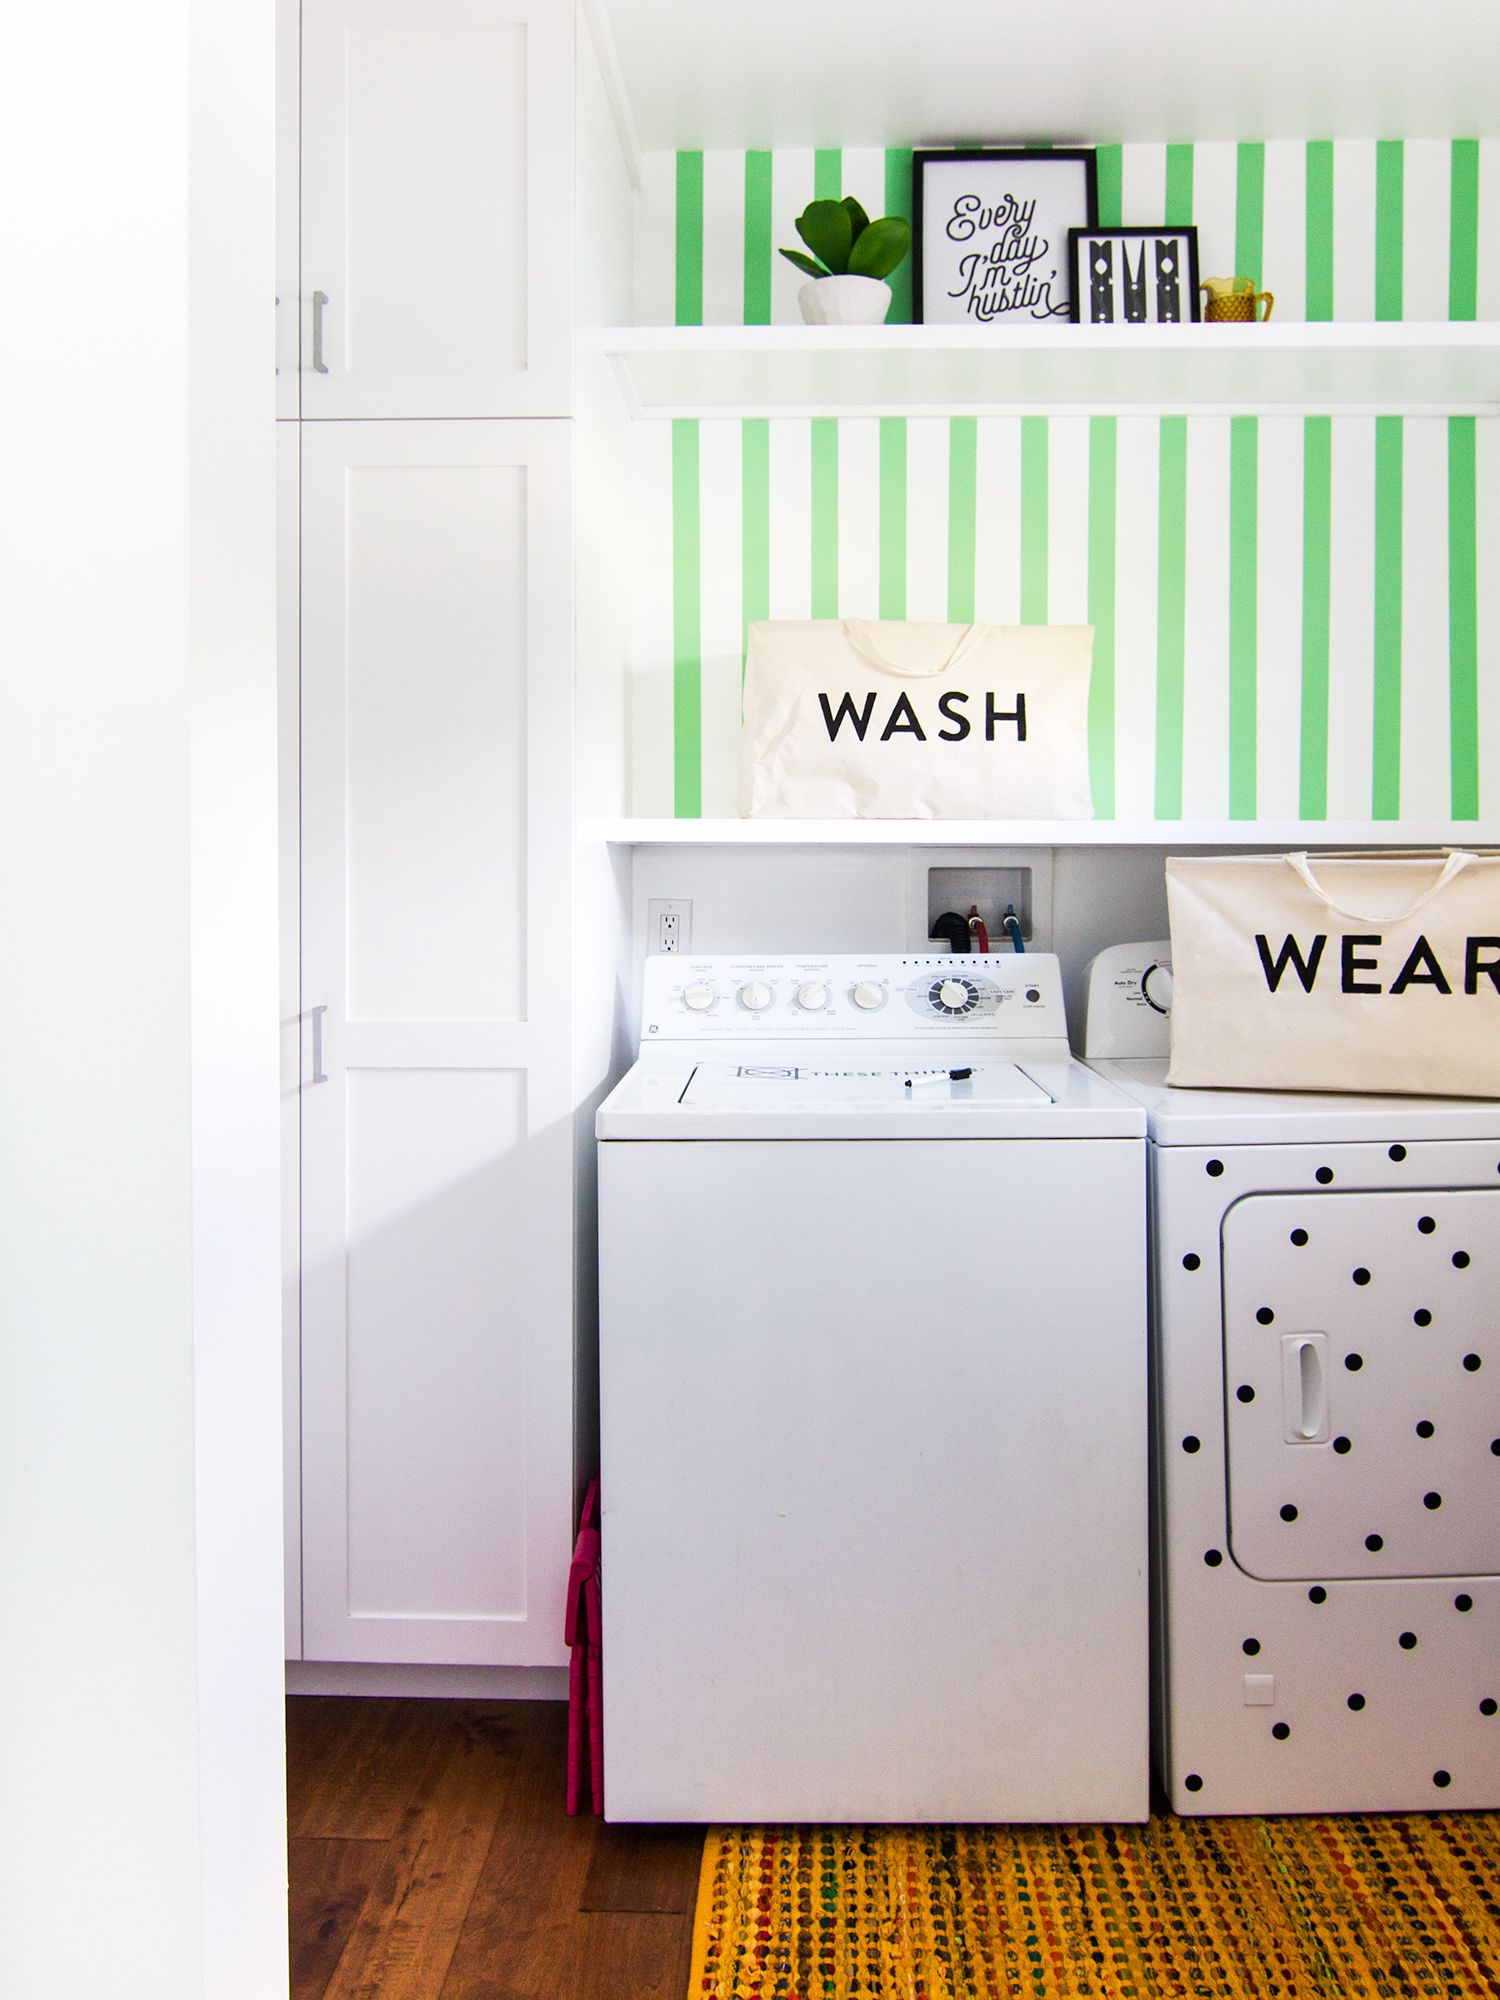 Design Your Own Laundry Room: Laundry Room Diy, Diy Laundry